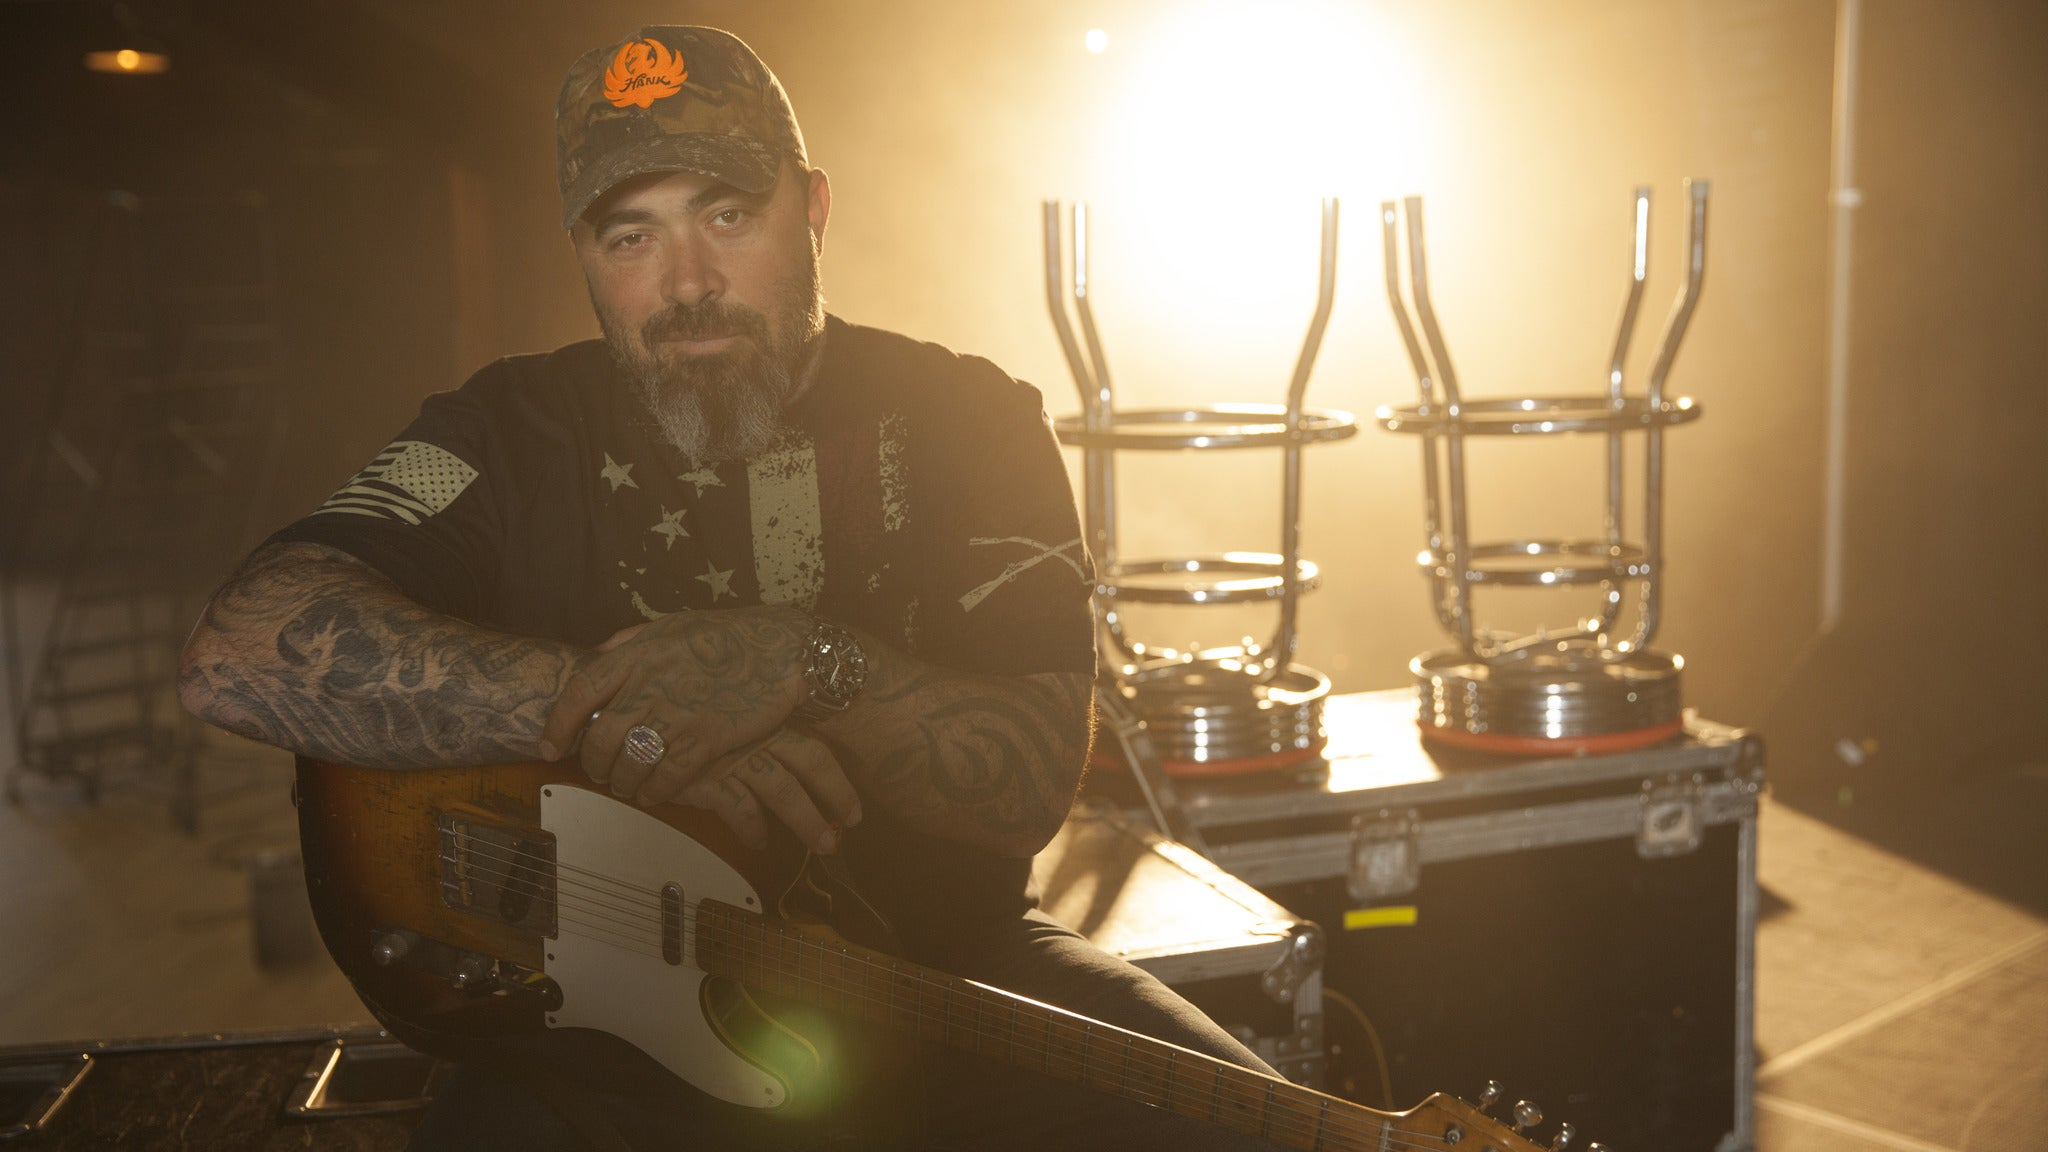 Aaron Lewis, The Sinner Tour Presented By Wycd